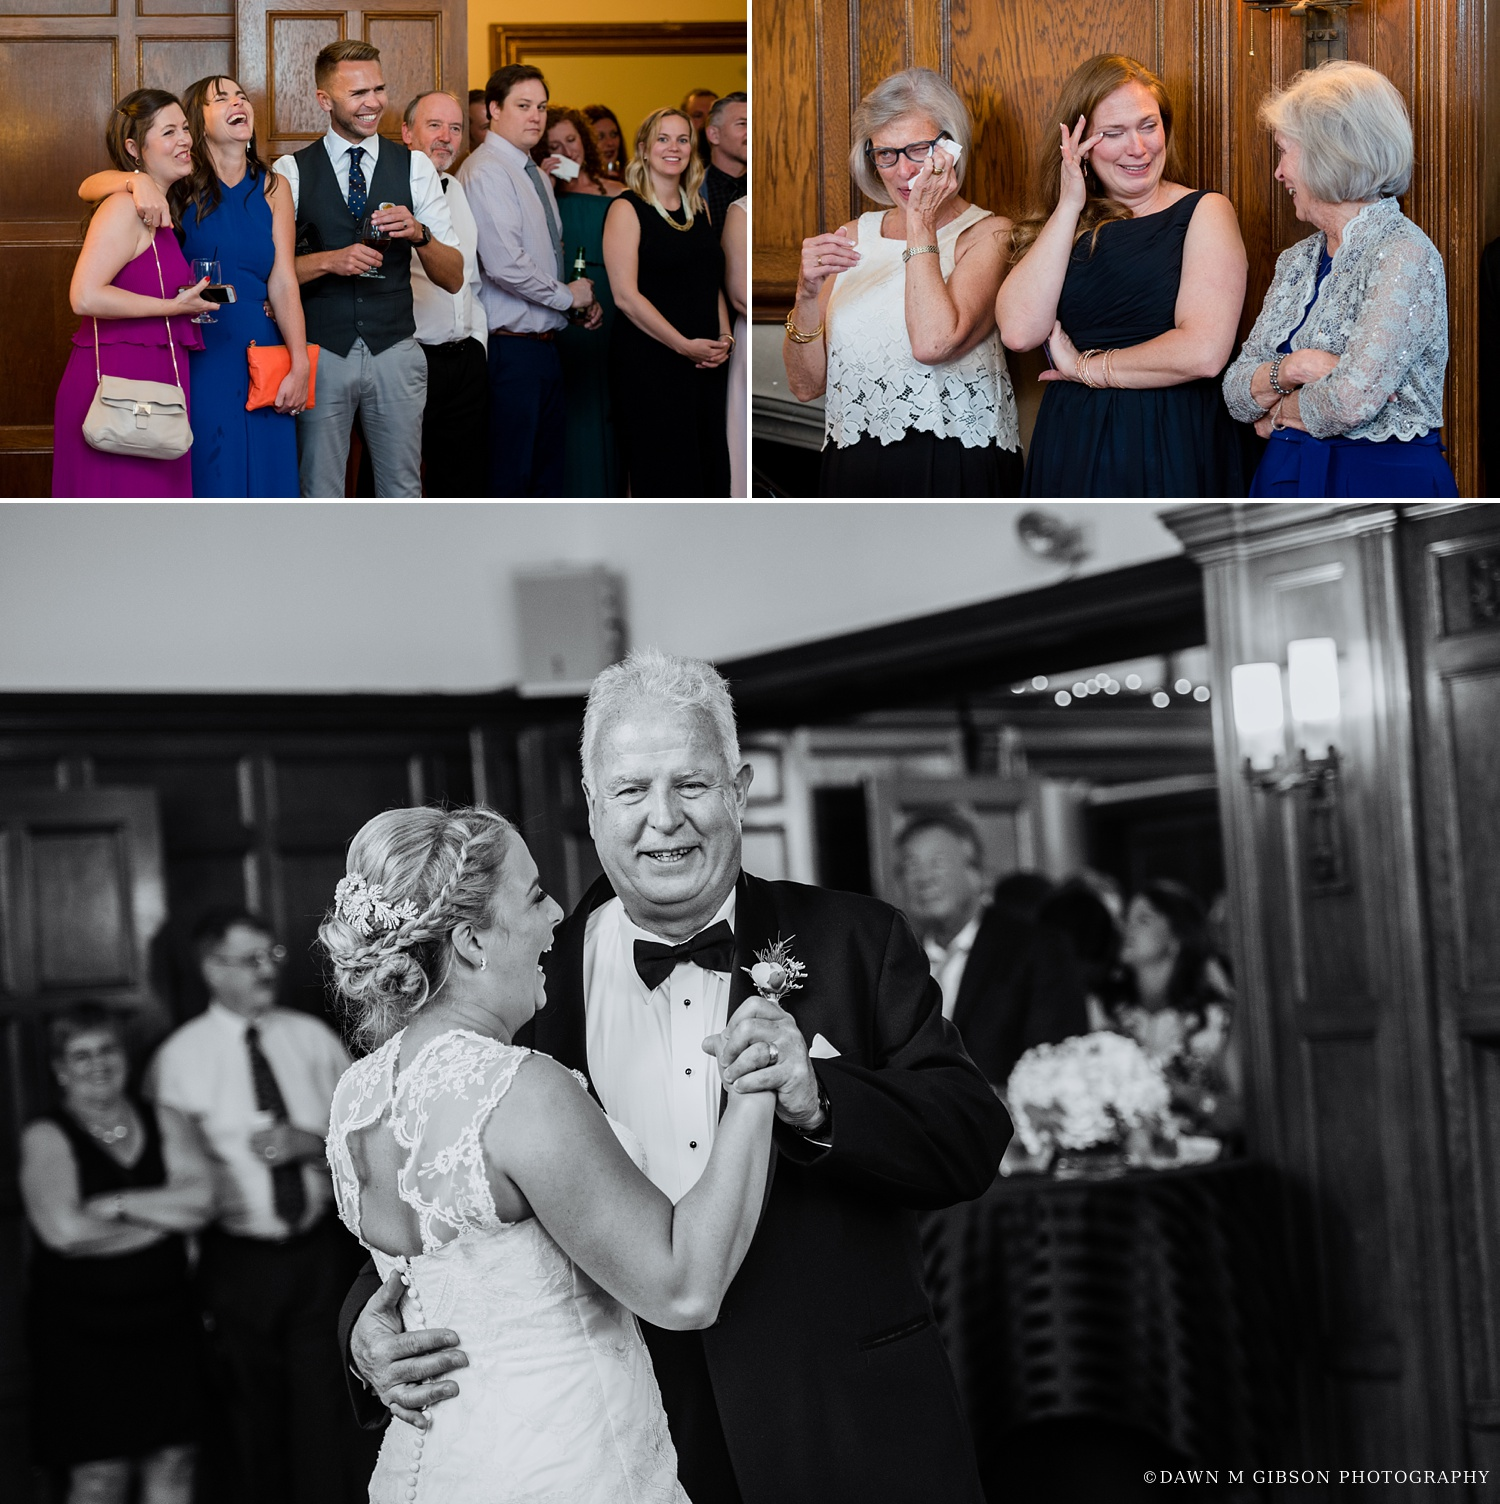 buffalo_wny_rochester_wedding_photographer_dawnmgibsonphotography_strathallan_colgate_rochester_divinity_rochester_wedding_venues_0079.jpg